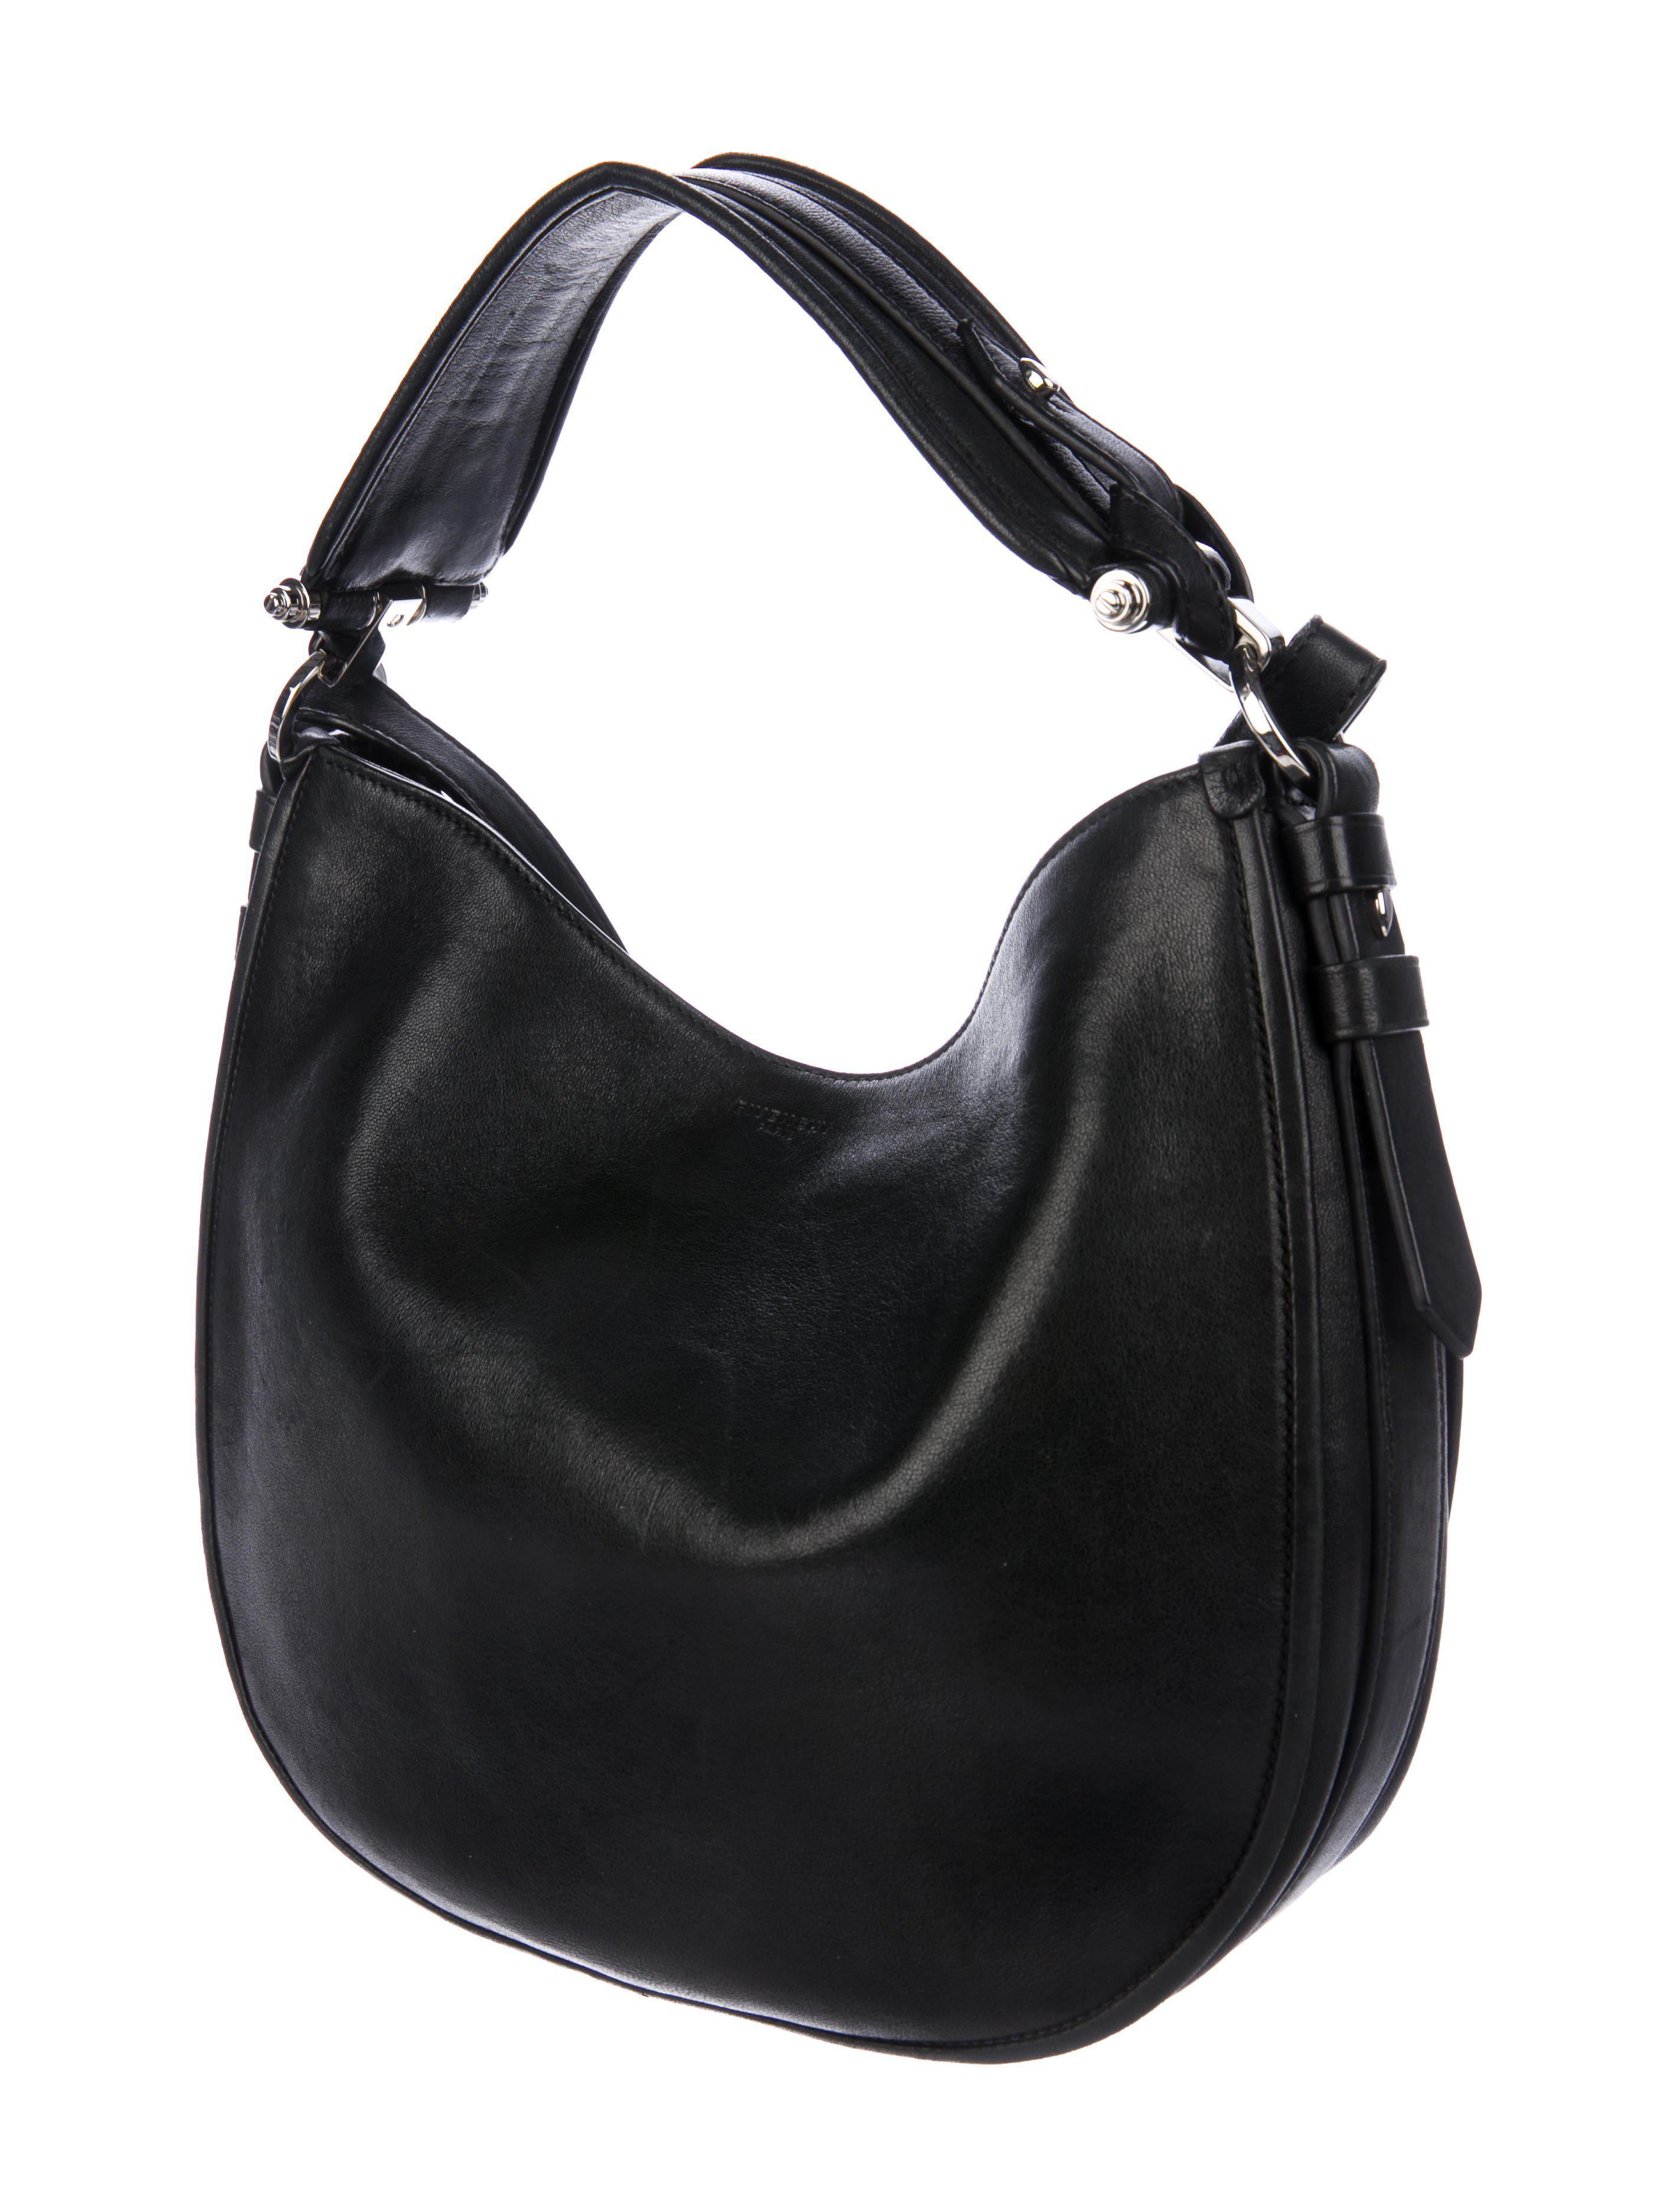 Lyst - Givenchy Leather Obsedia Hobo Black in Metallic 8f20e6cc9a